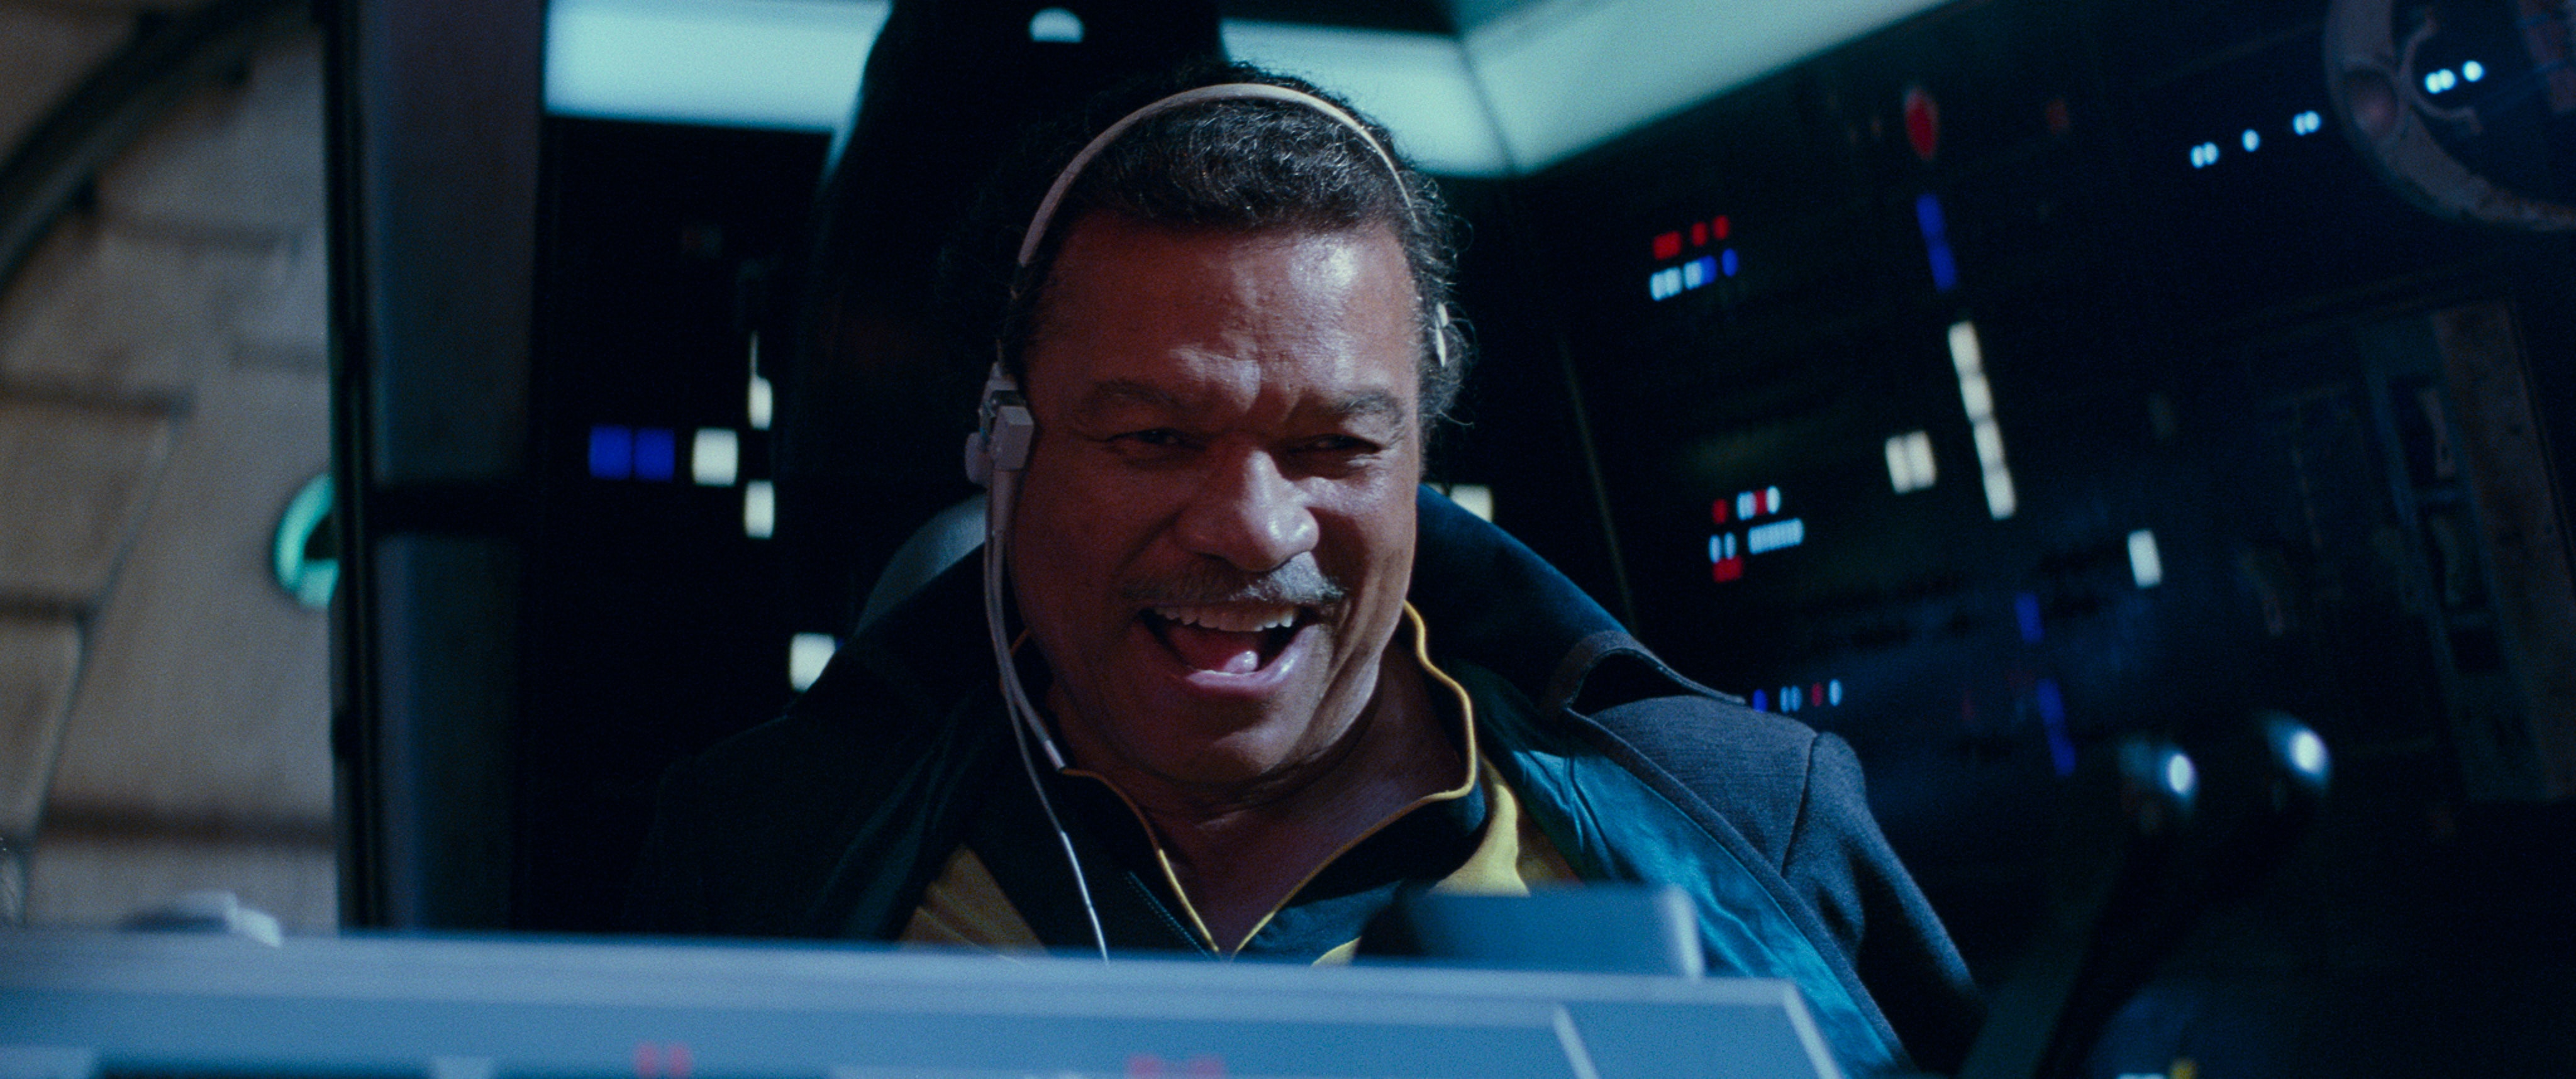 Lando Calrissian Star Wars Episode IX